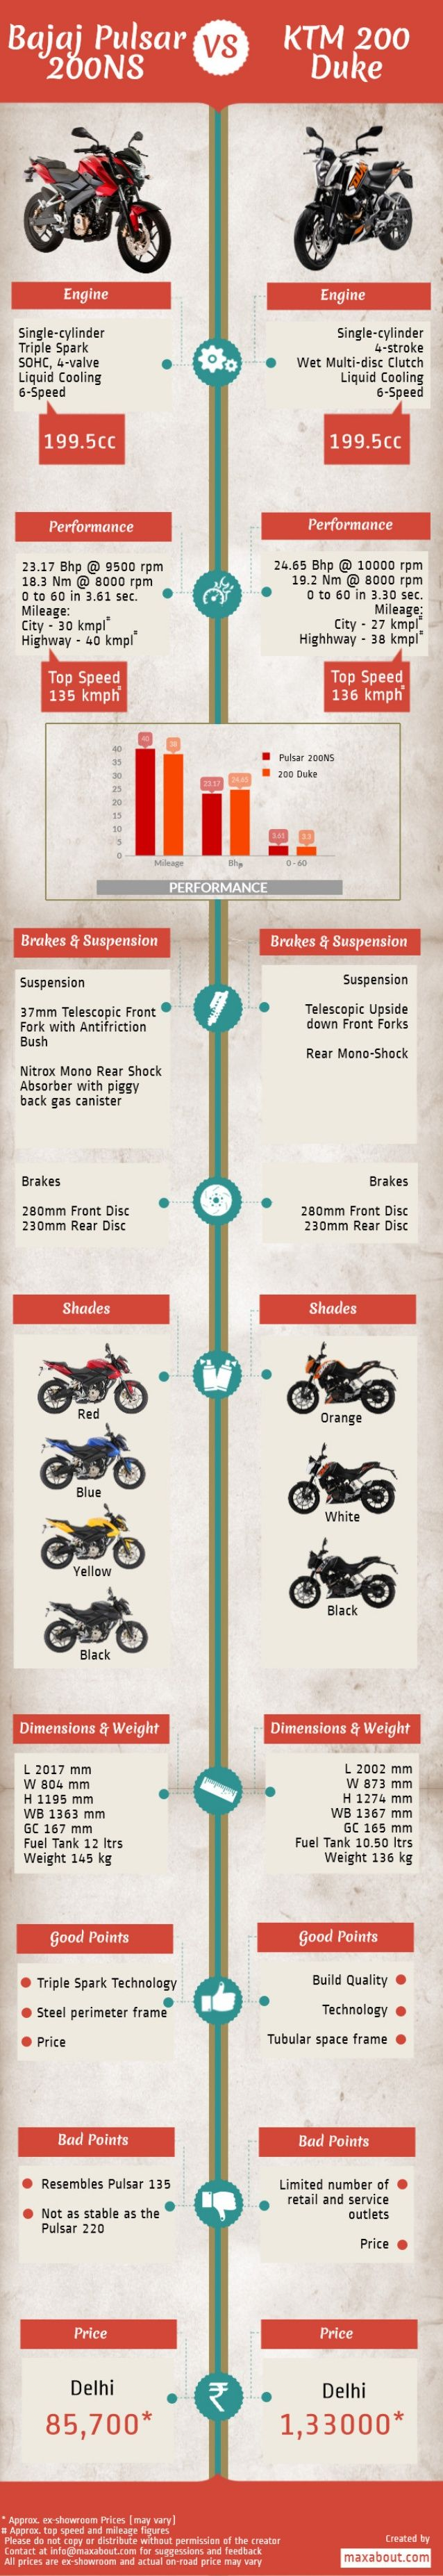 Bajaj Pulsar 200NS vs. KTM 200 Duke